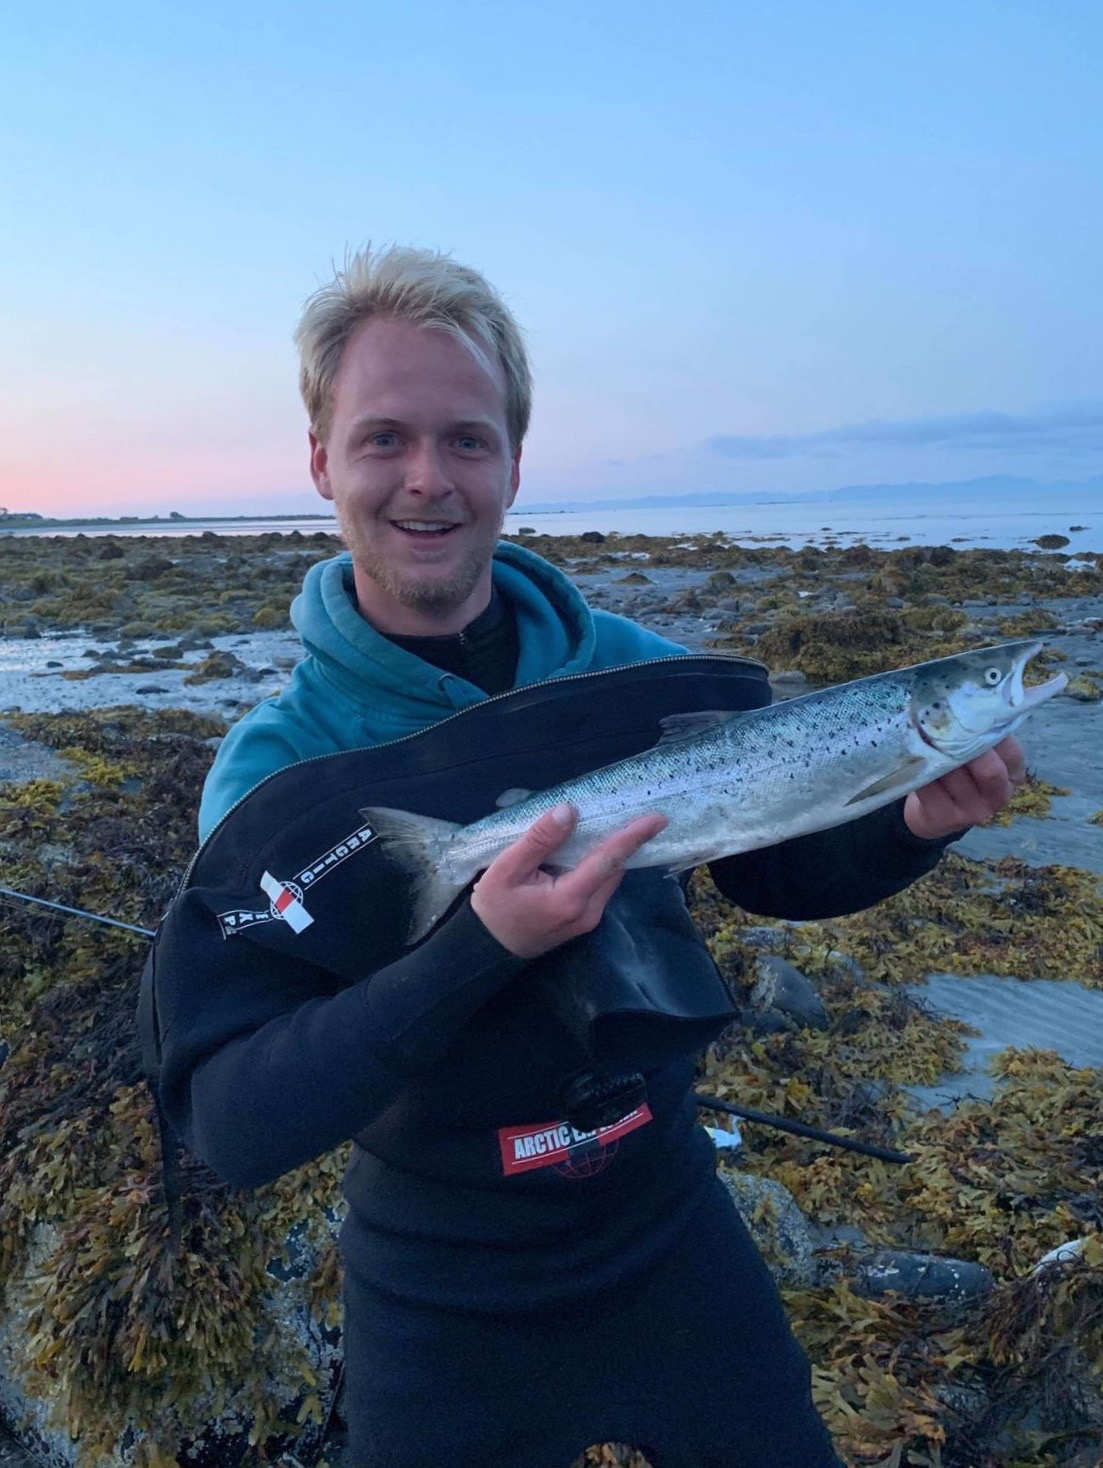 Fishing Tours Arctic Salmon full circle unlimited tours Norway Sweden Finnature